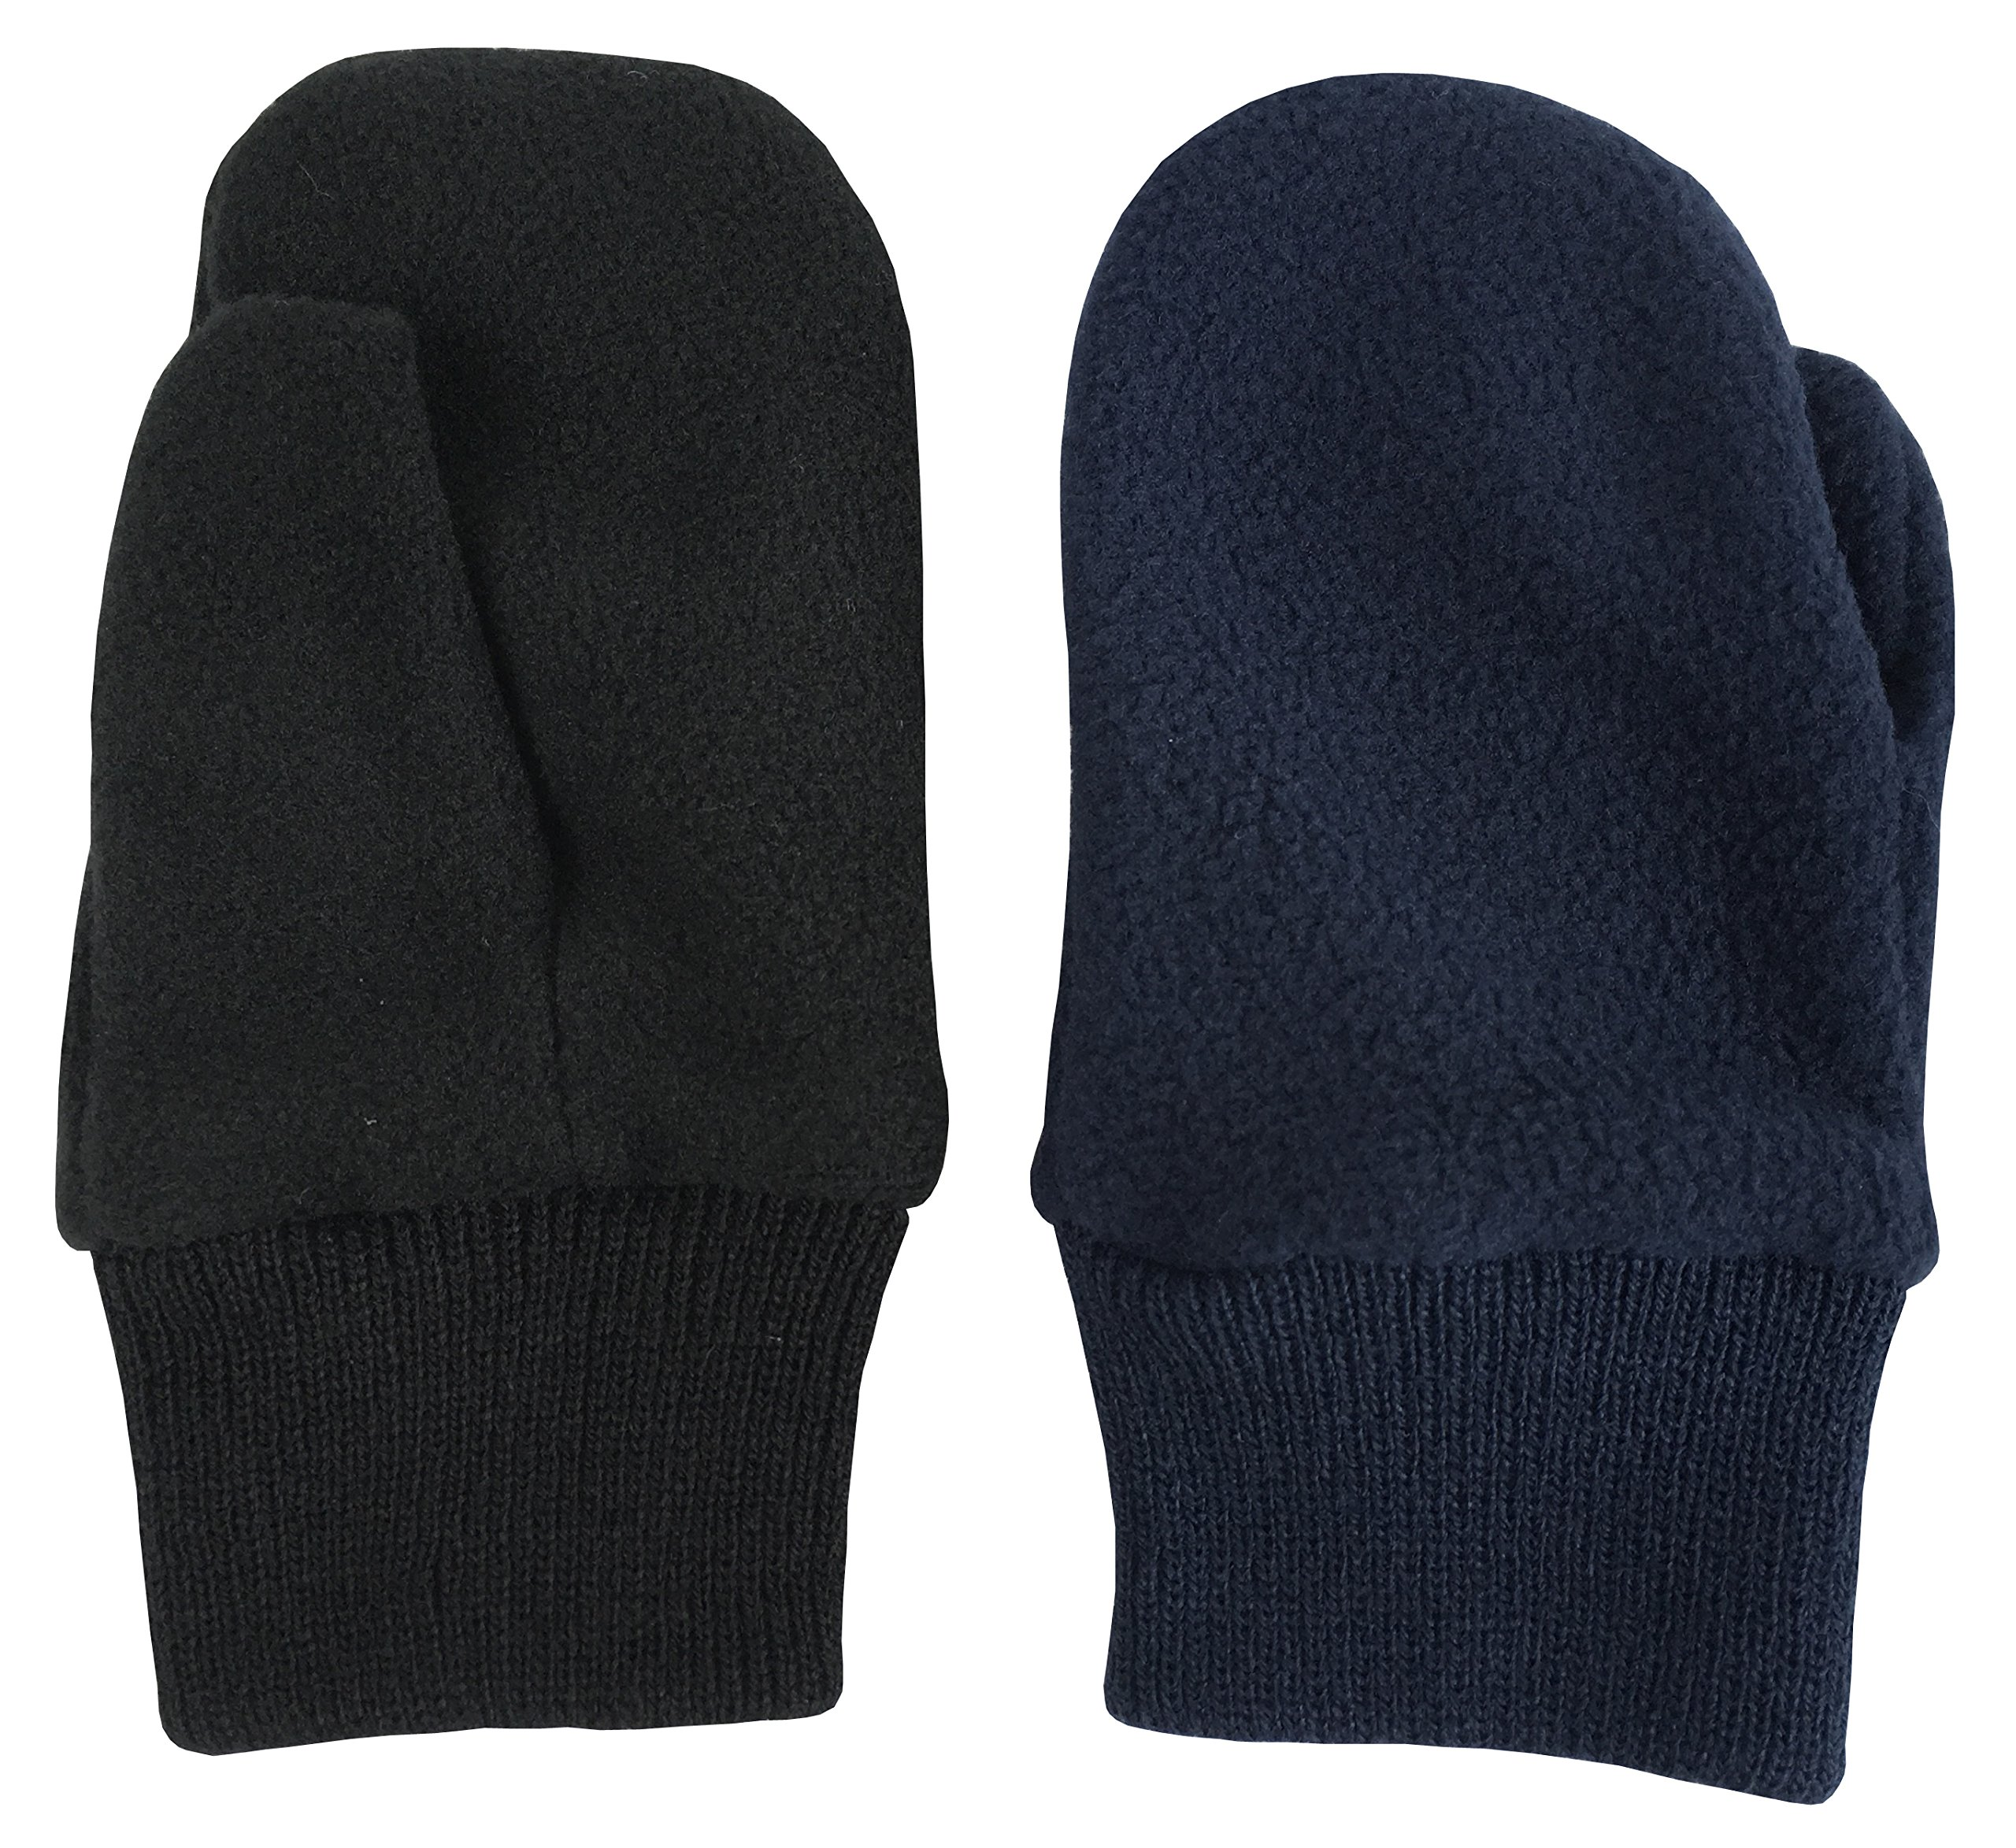 N'Ice Caps Baby Unisex and Toddler Cozy Winter Fleece Mittens - 2 Pair Pack (2-3 Years, Navy/Black Pack)